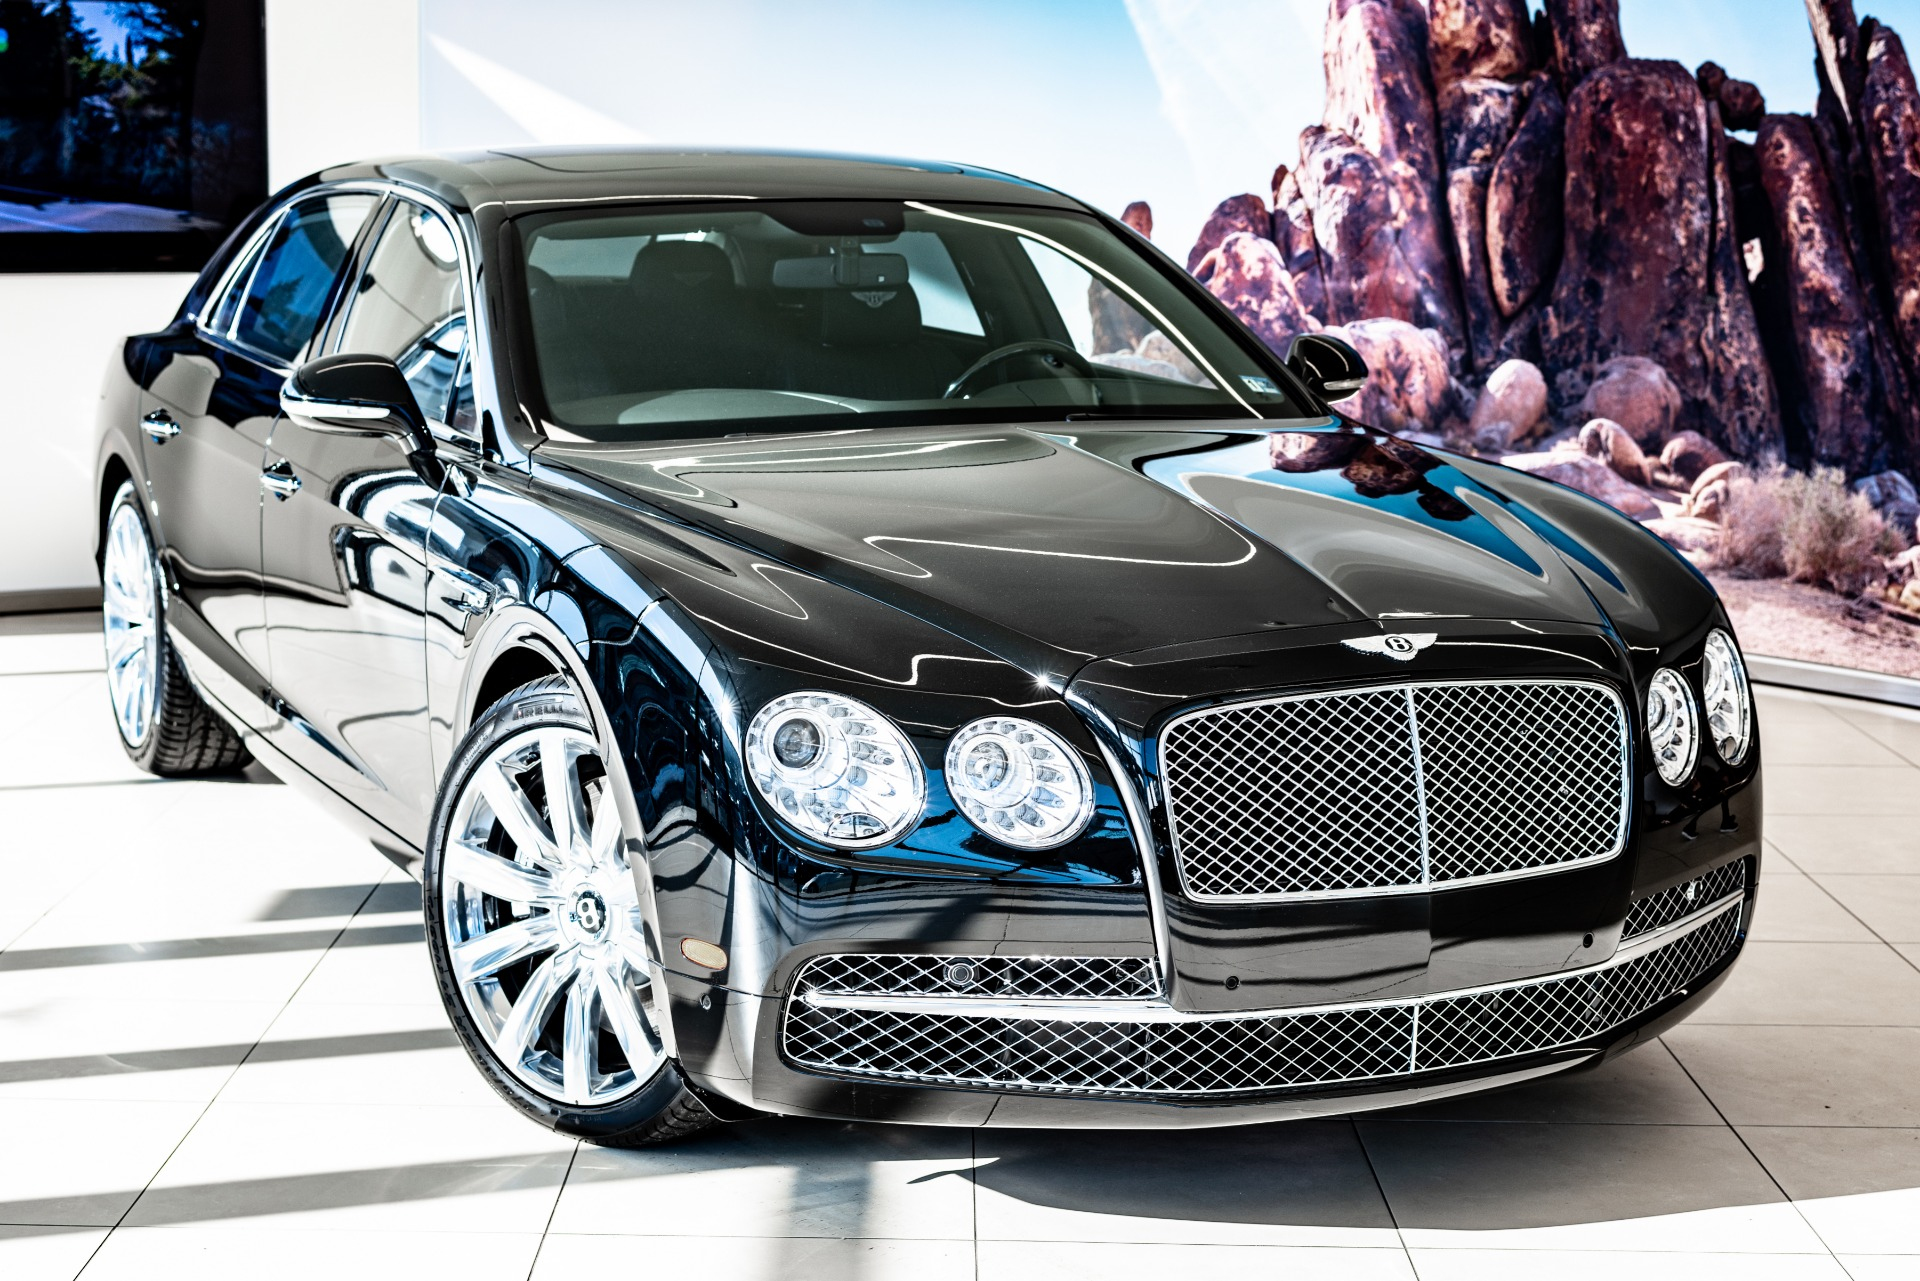 2018 Bentley Flying Spur W12 Stock 8N070285 For Sale